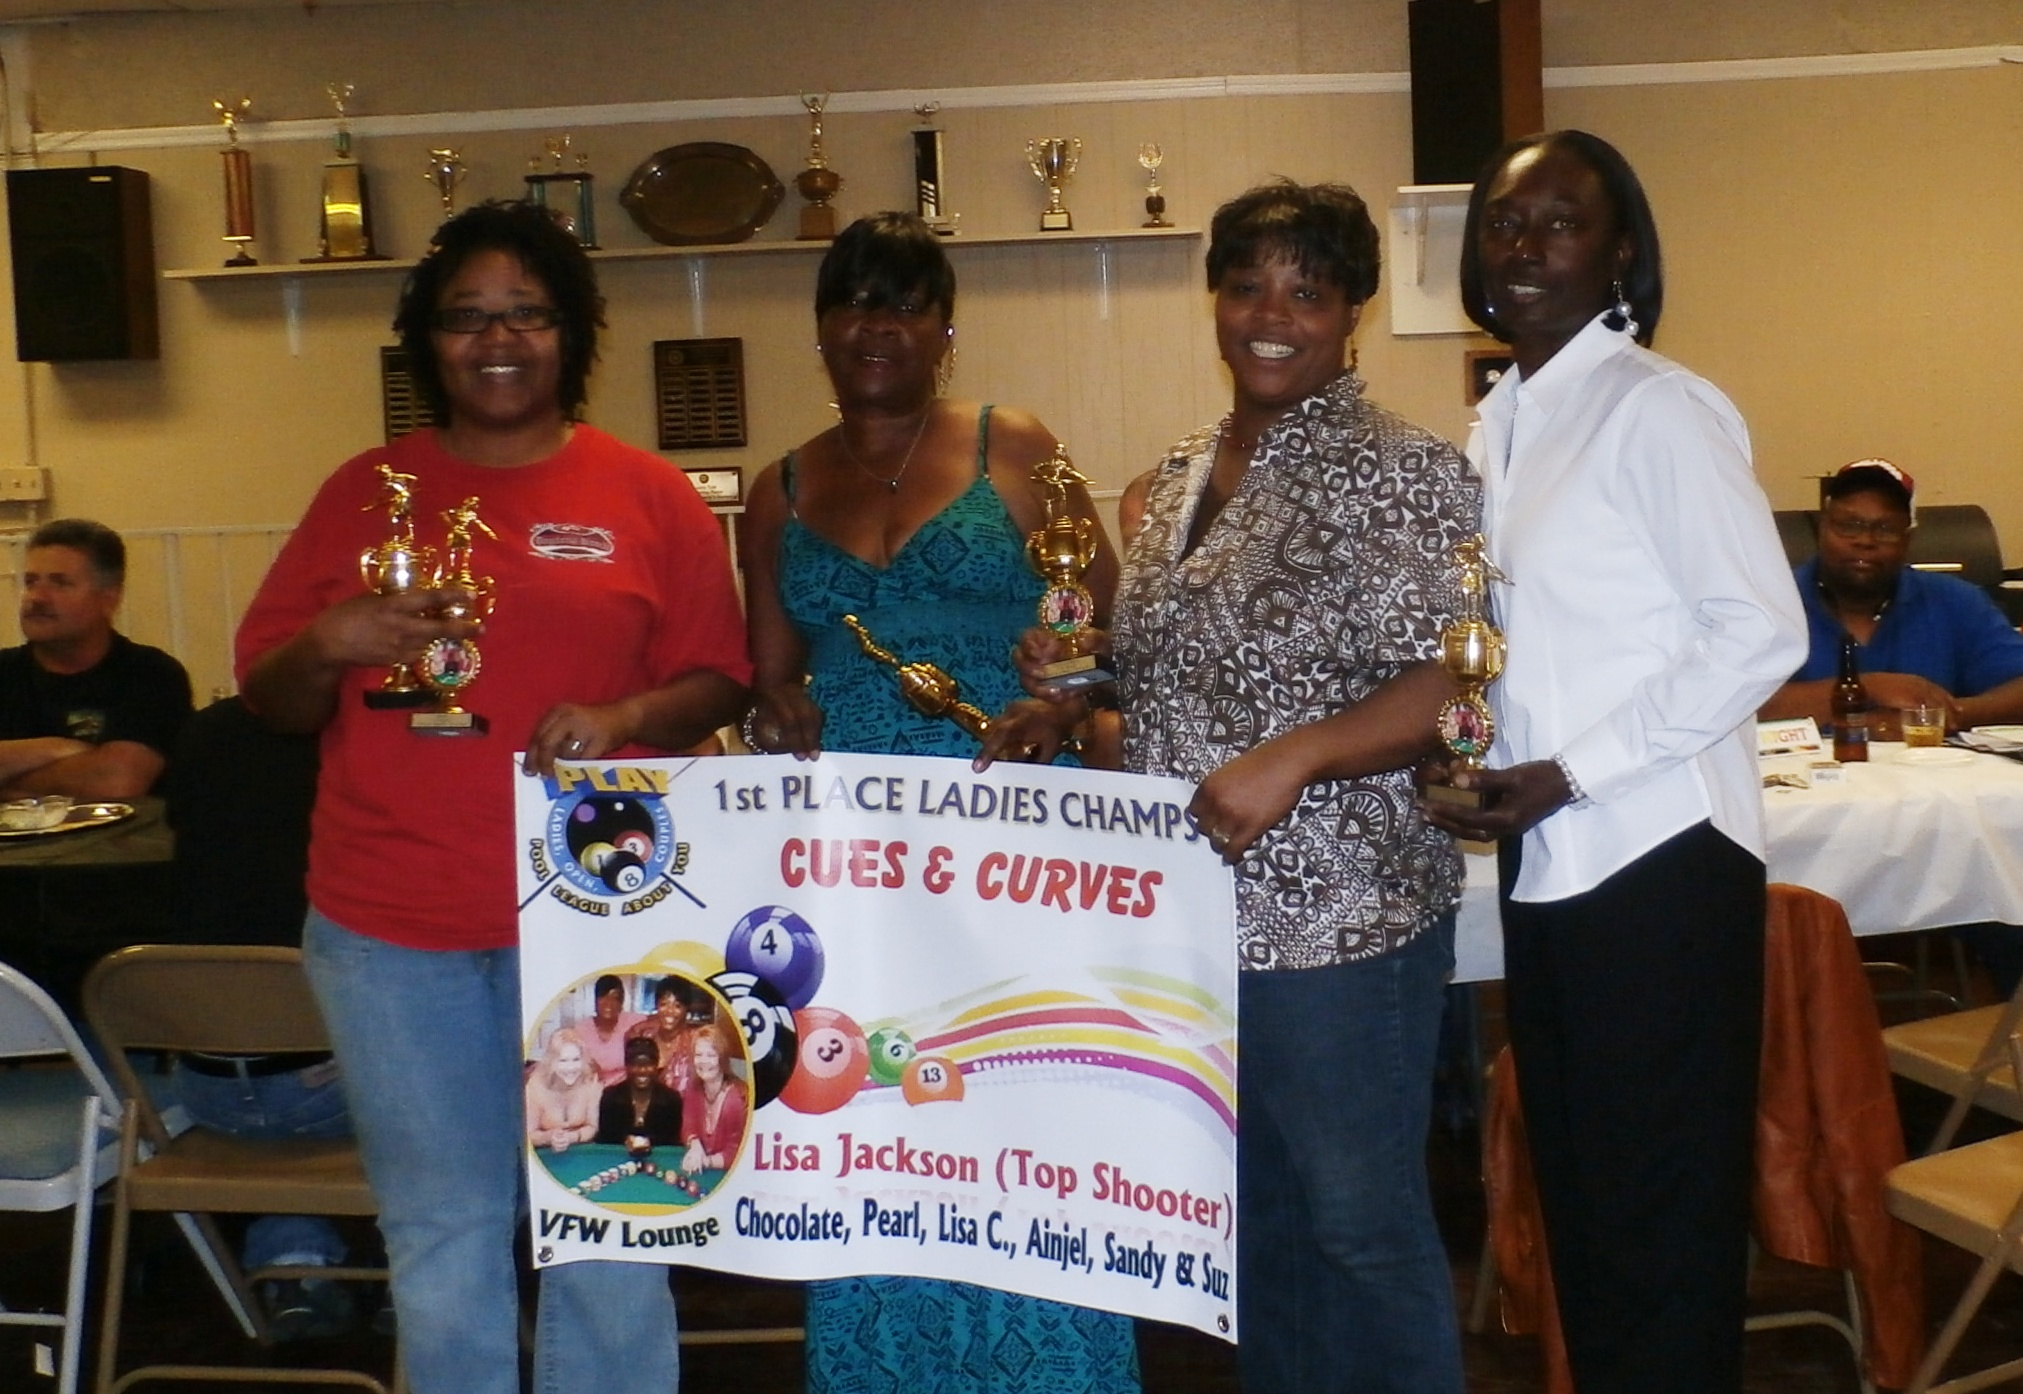 Cues & Curves (S3) Champs